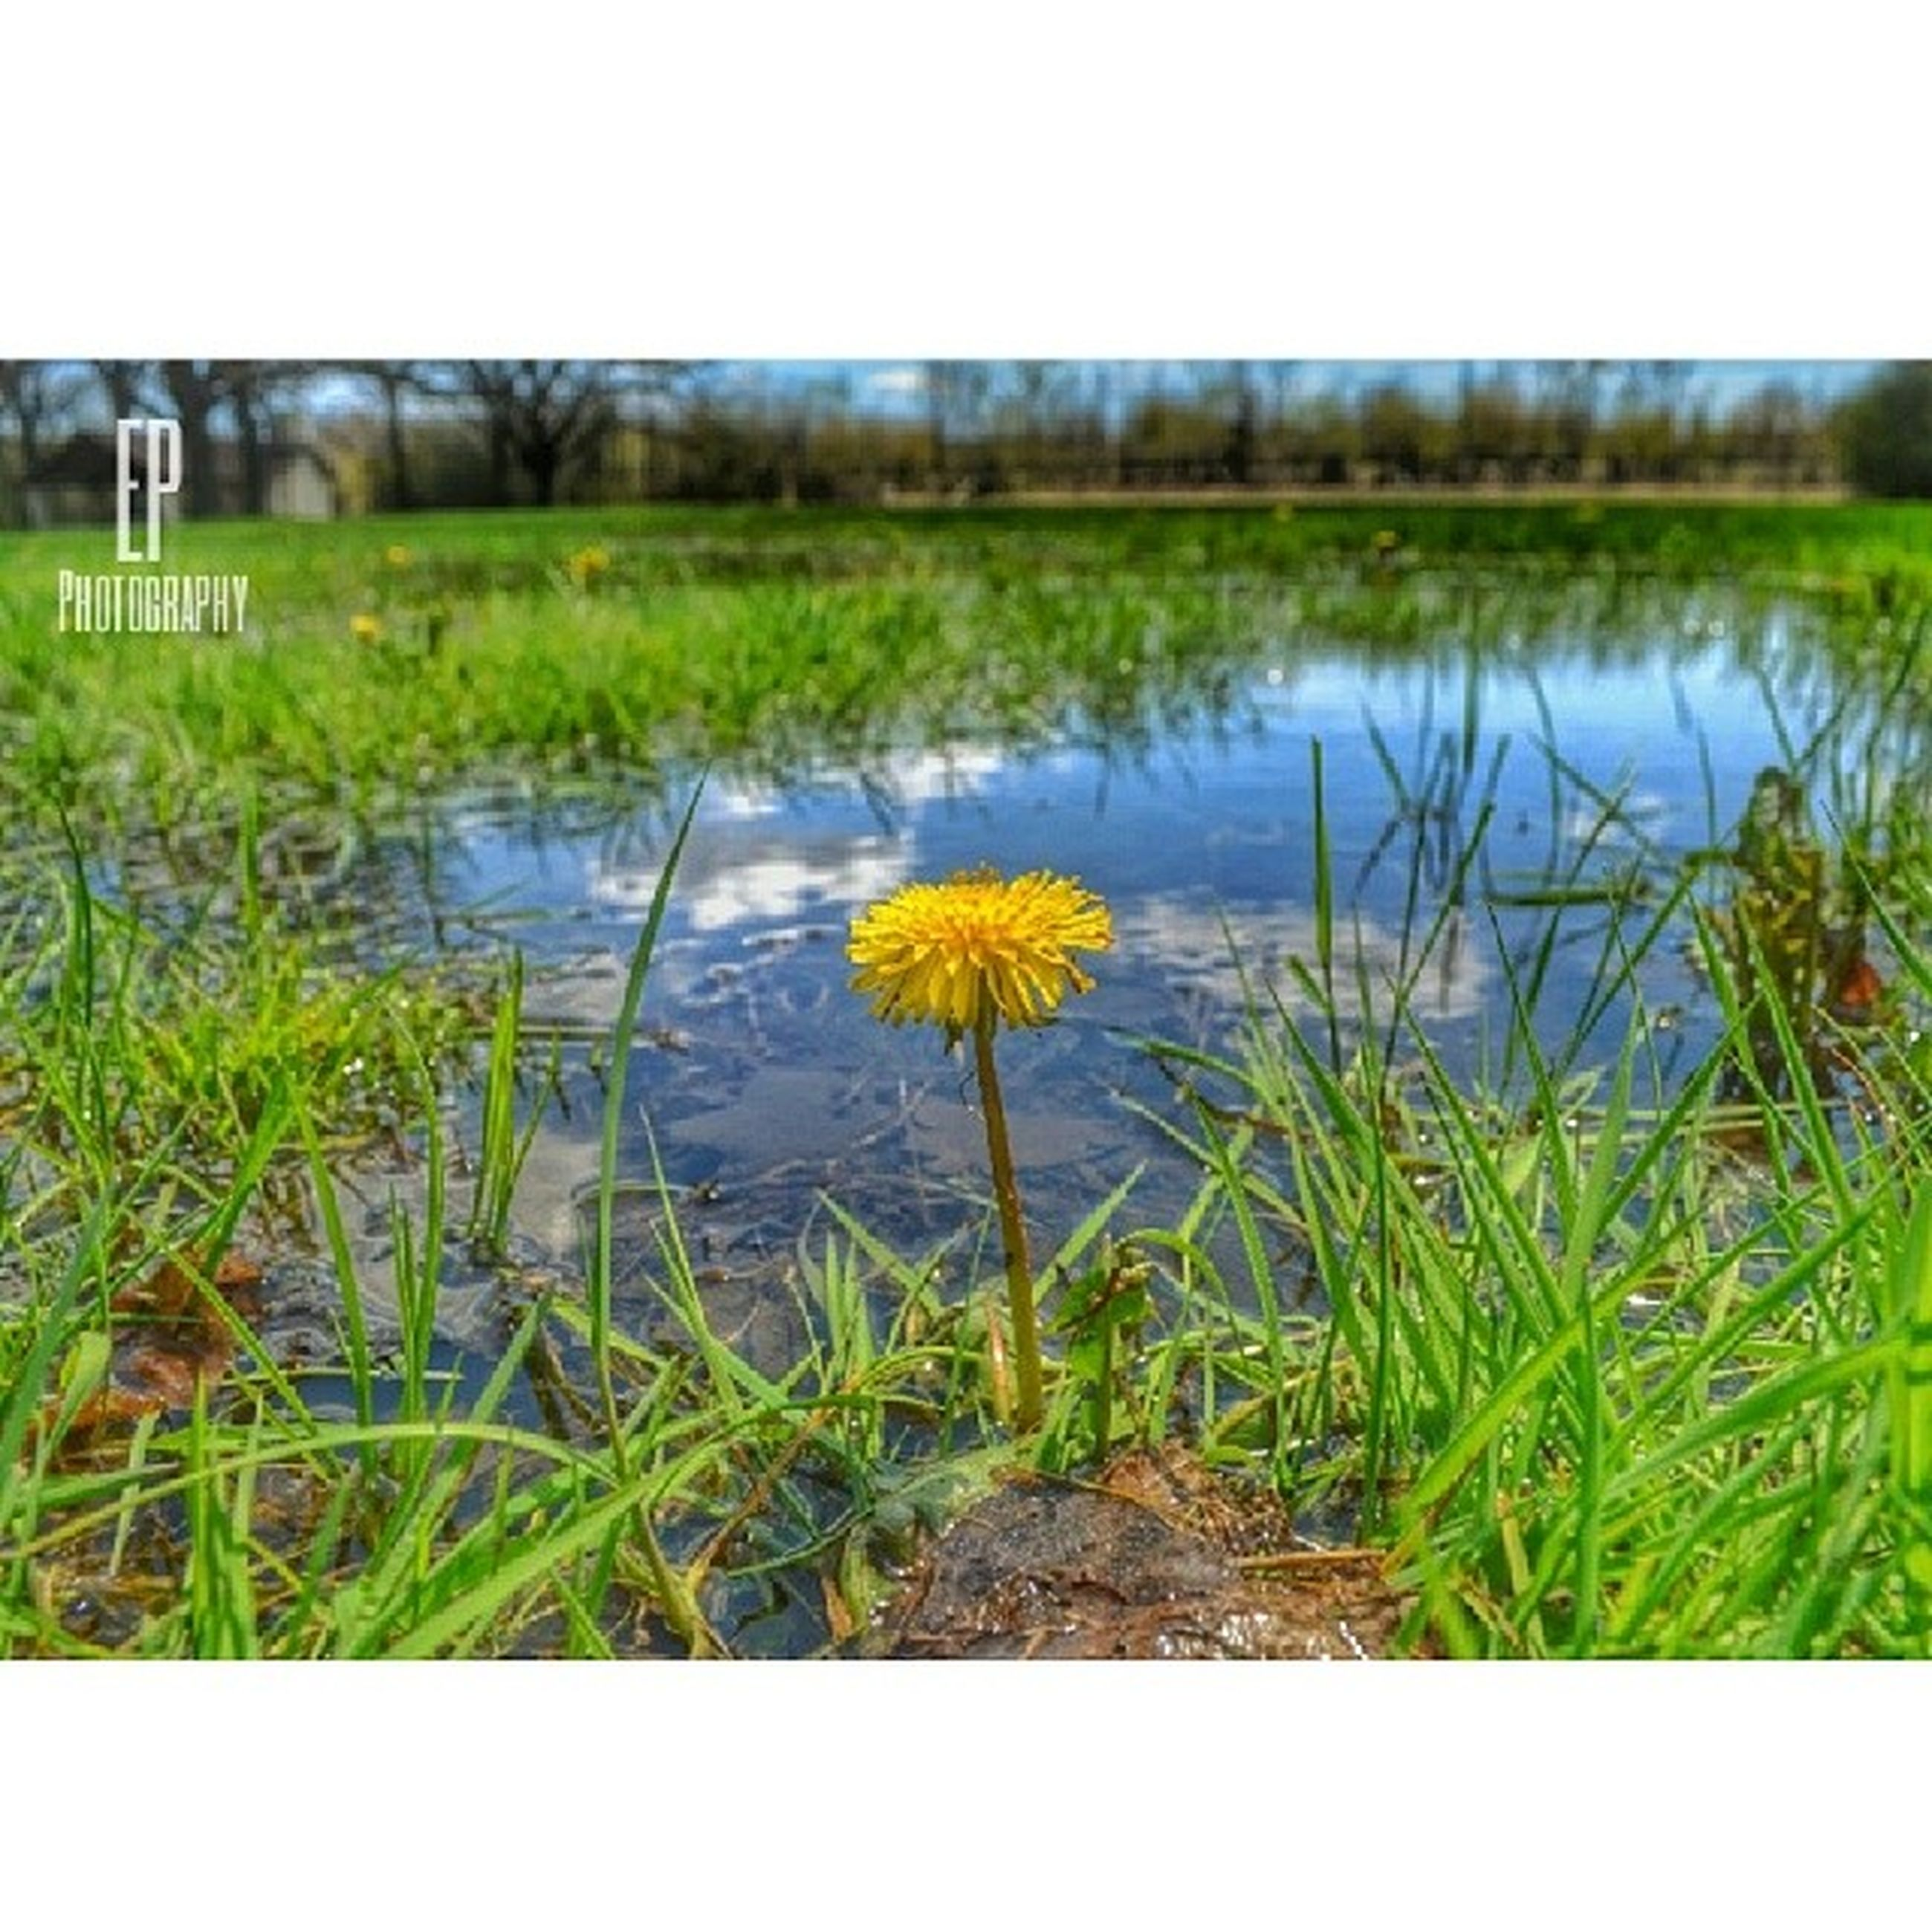 flower, grass, growth, water, plant, field, nature, beauty in nature, fragility, freshness, lake, tranquility, tranquil scene, clear sky, day, outdoors, stem, wildflower, auto post production filter, scenics